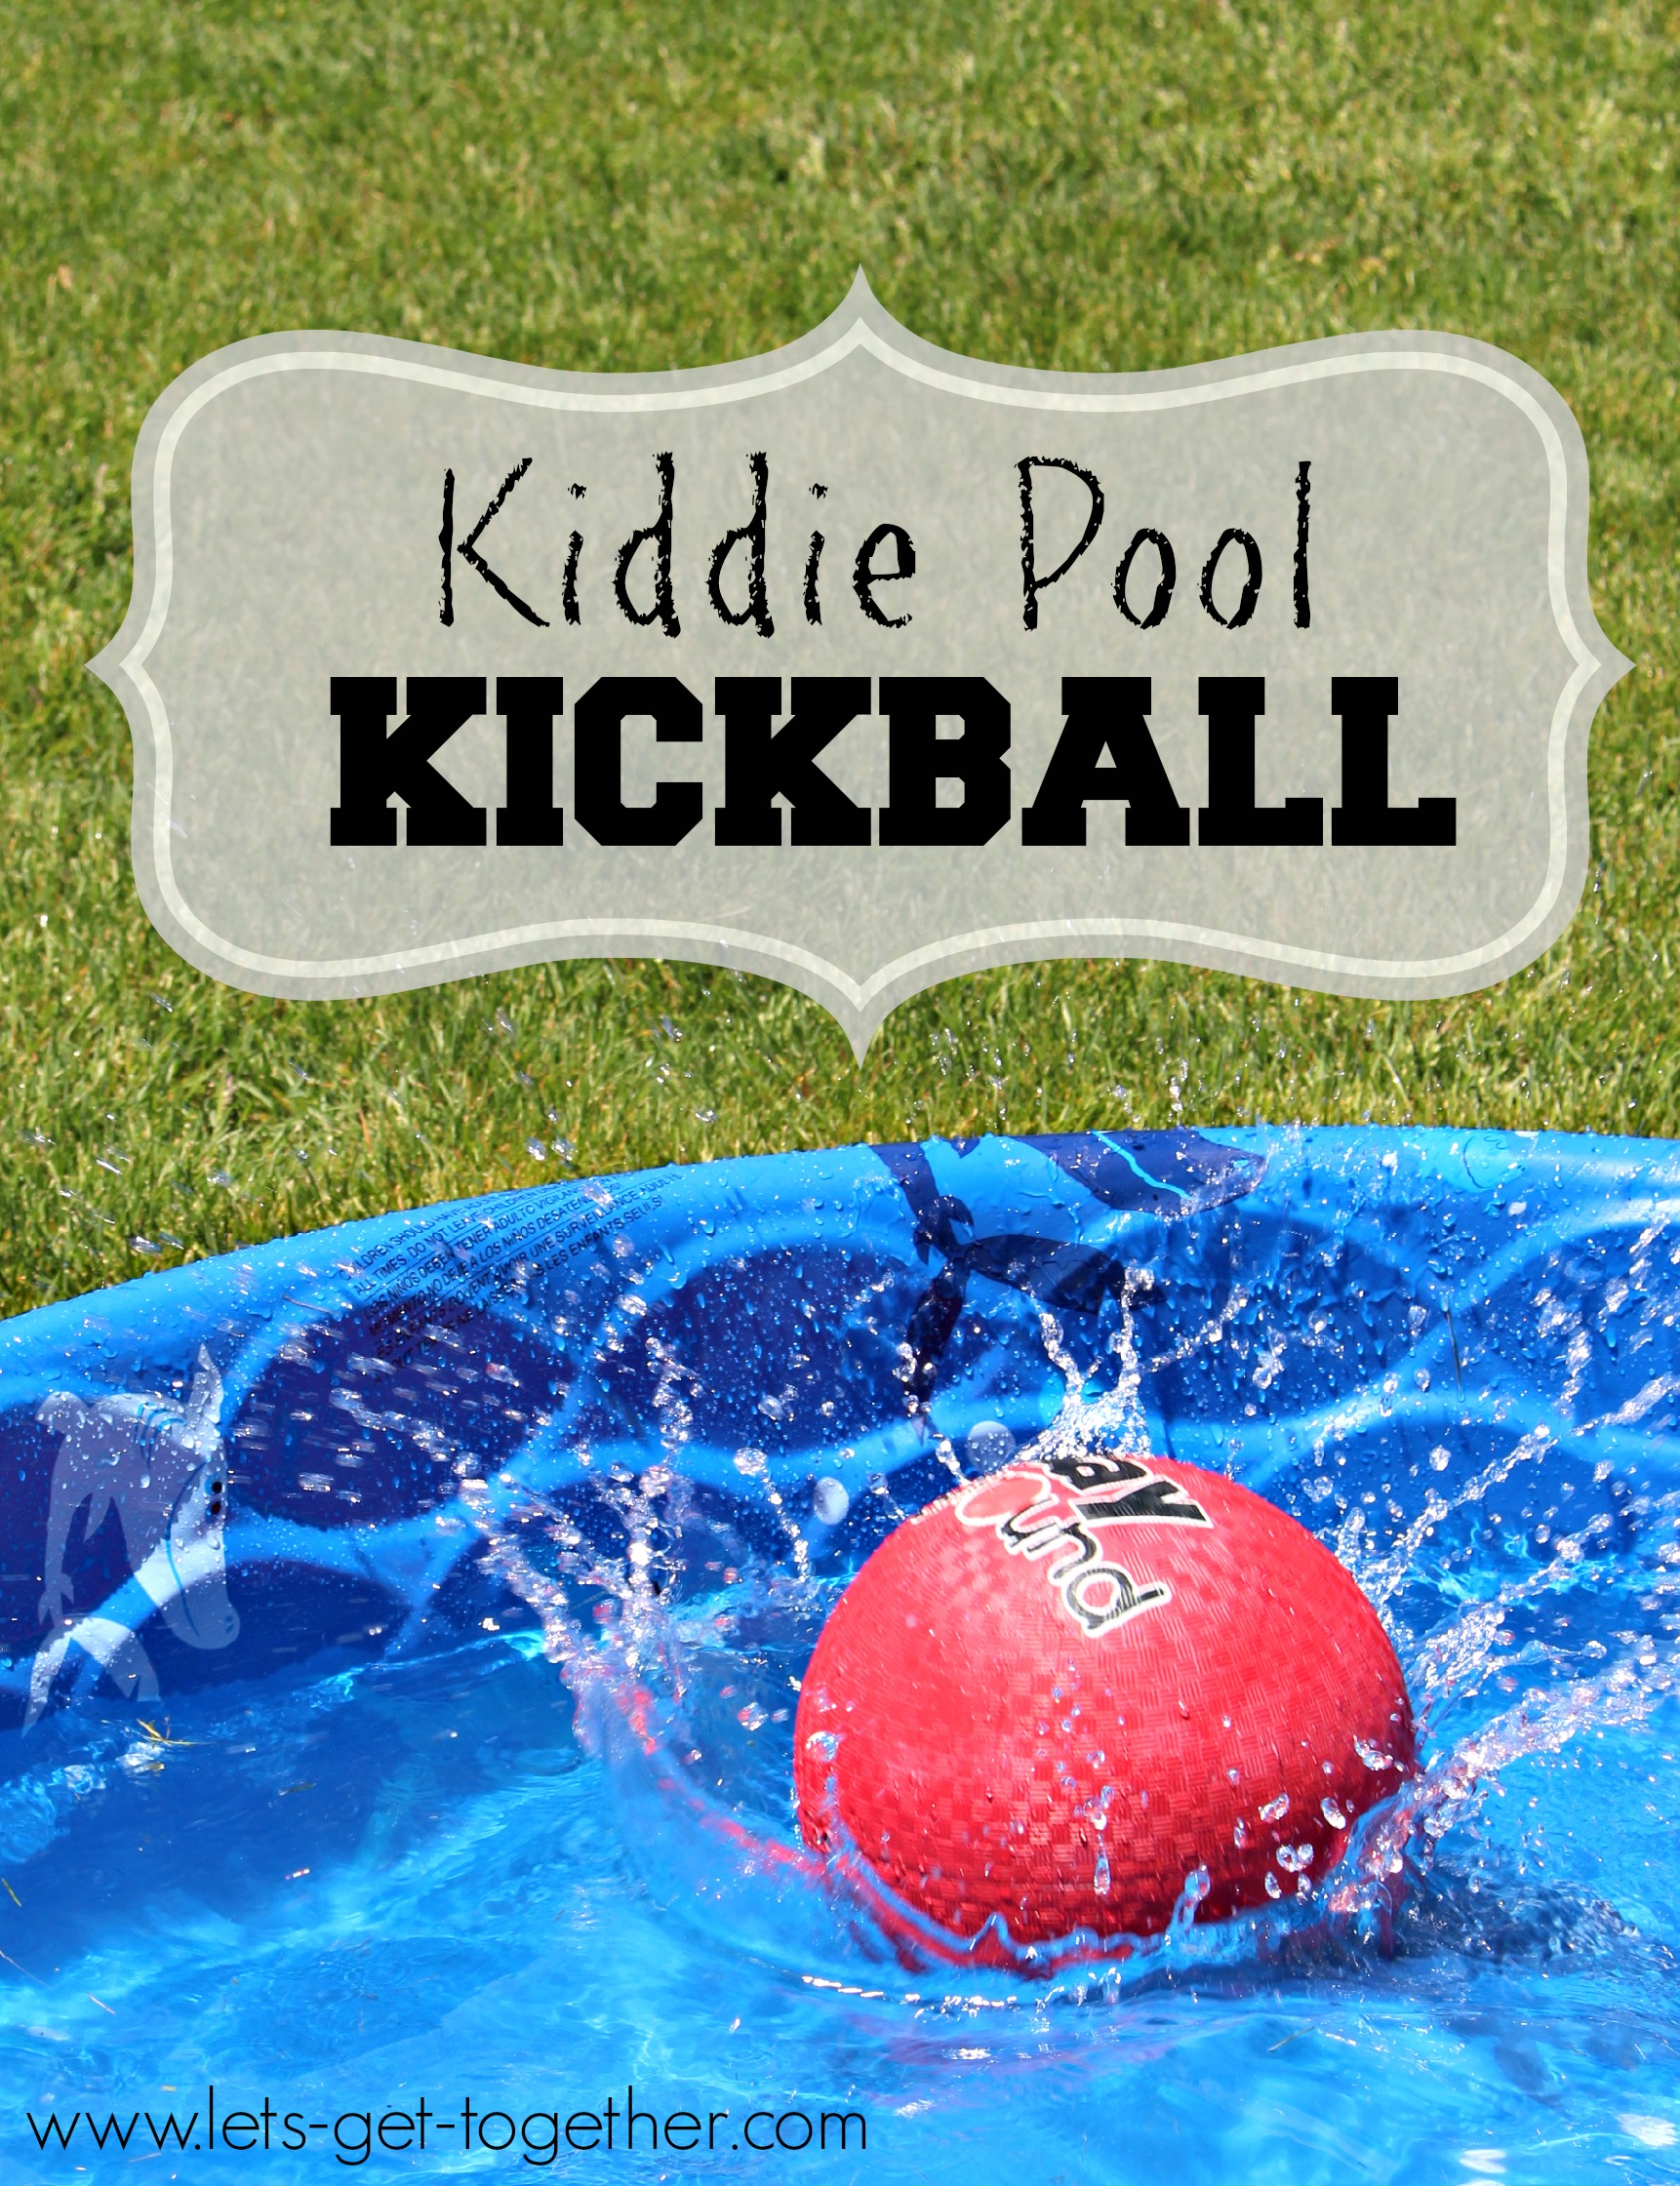 kiddie pool kickball water games